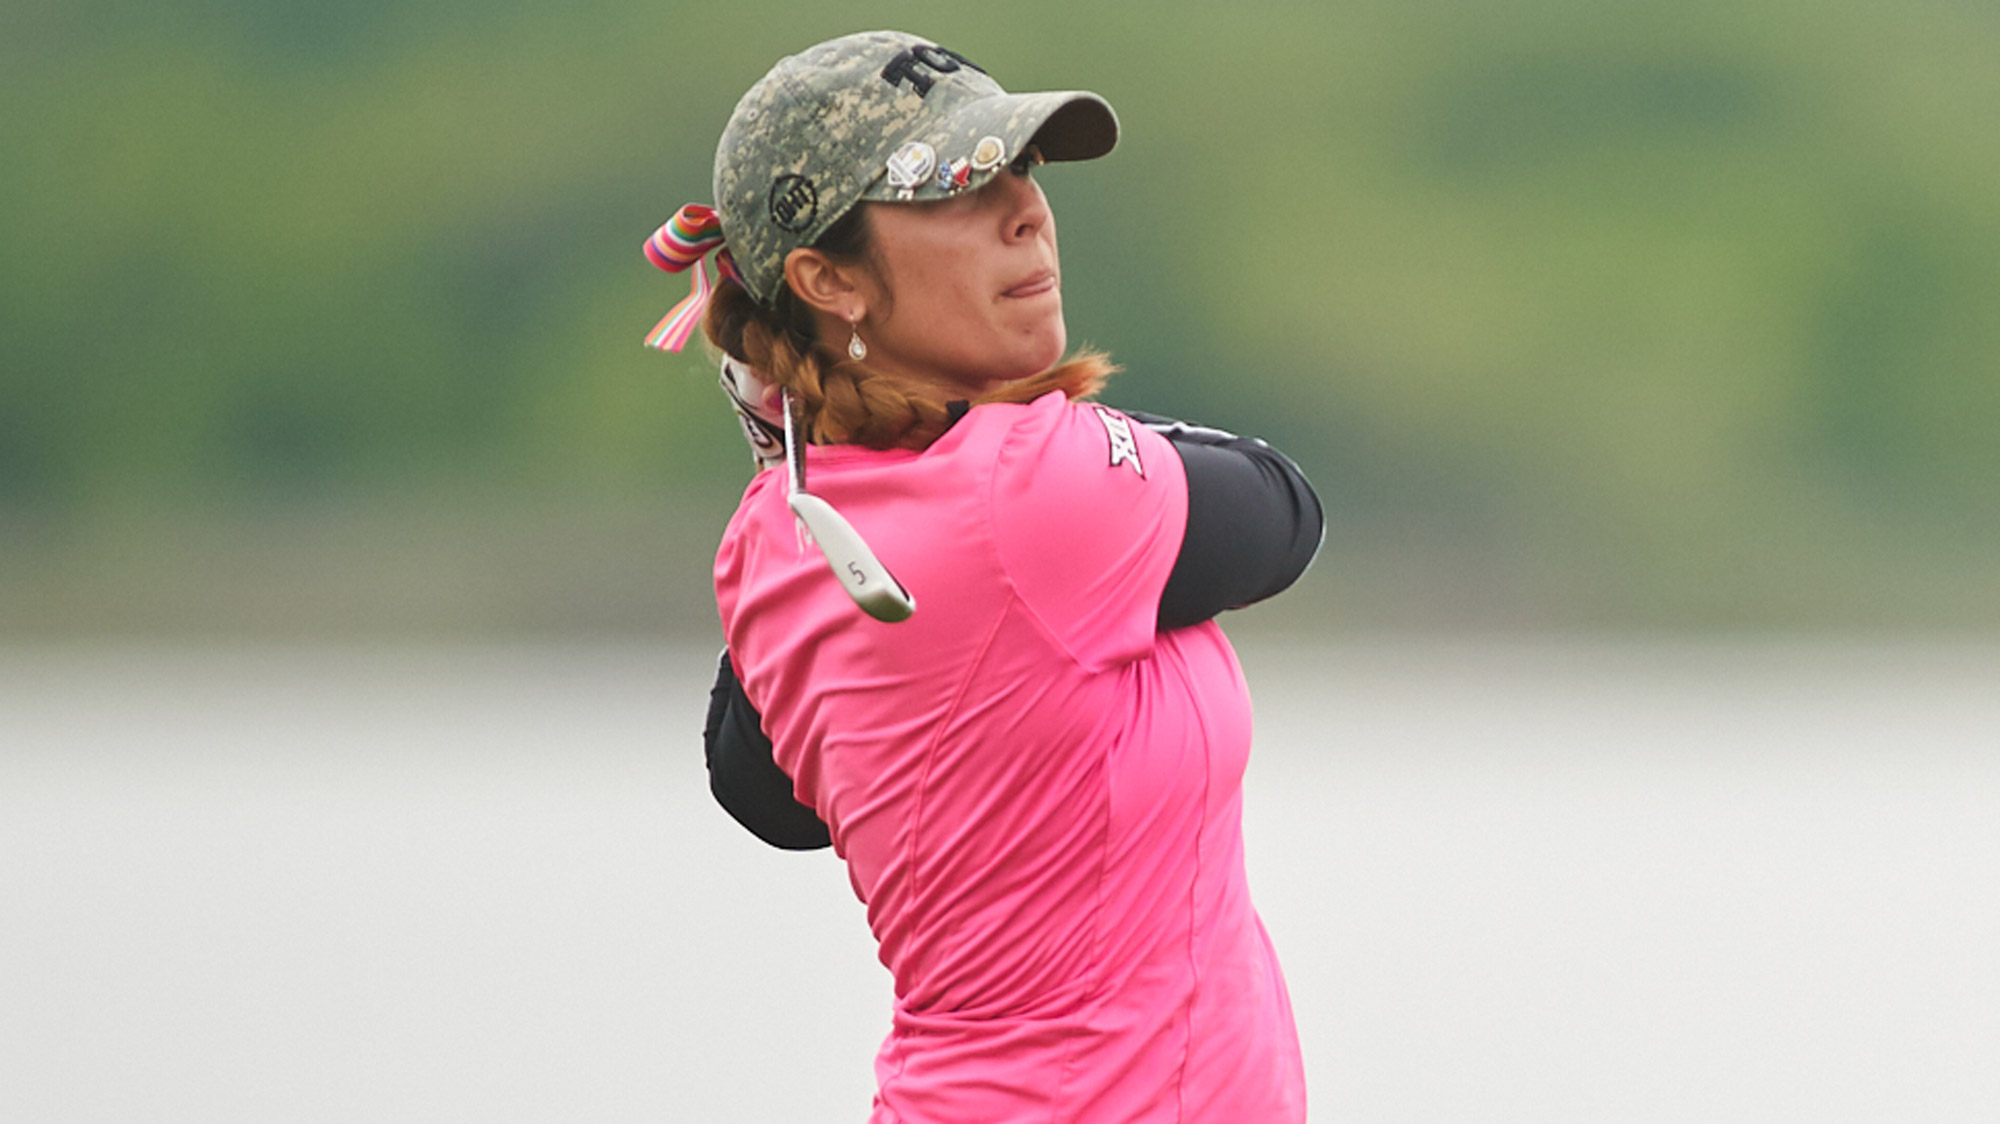 TCU Exemption Annika Clark at the VOA LPGA Texas Classic